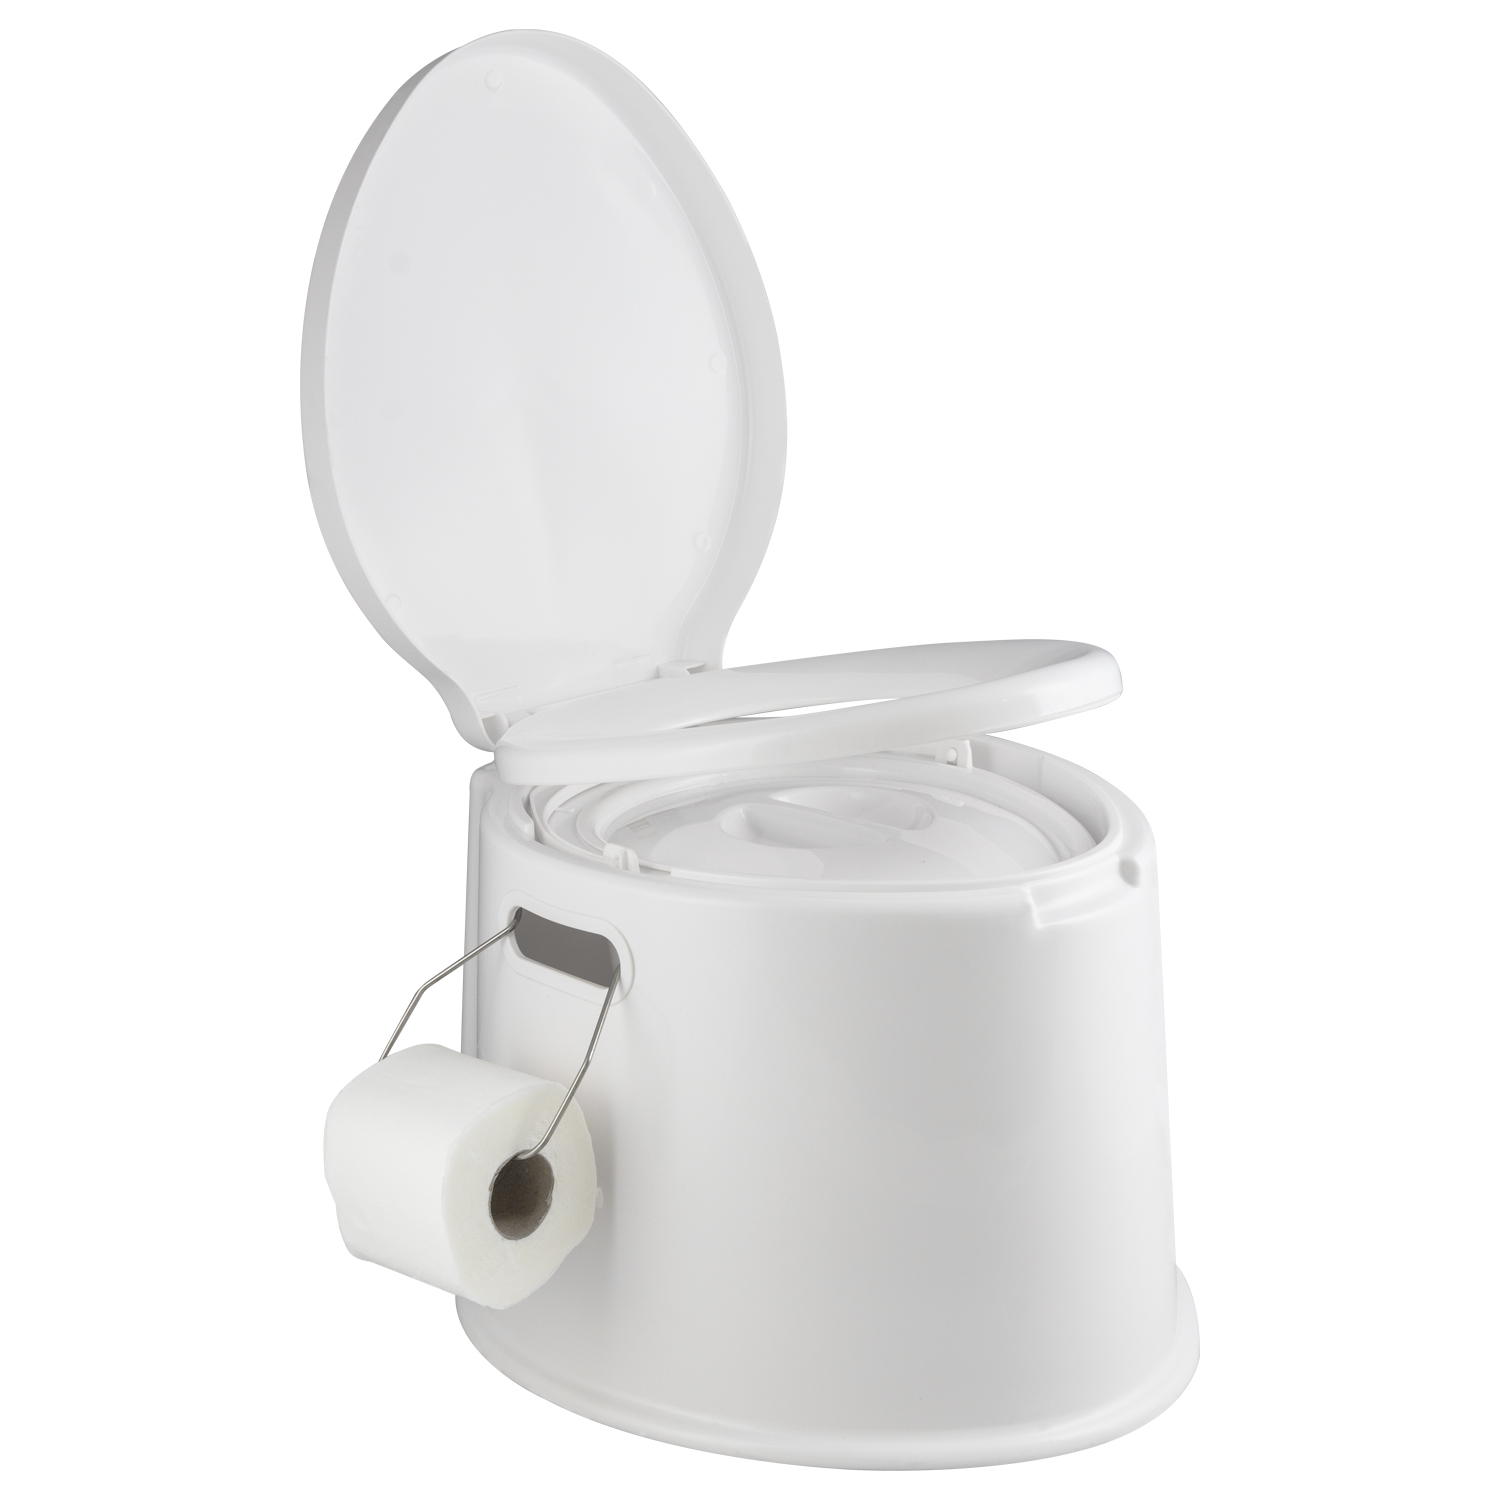 Camping Toilet Andes Portable Camping Toilet